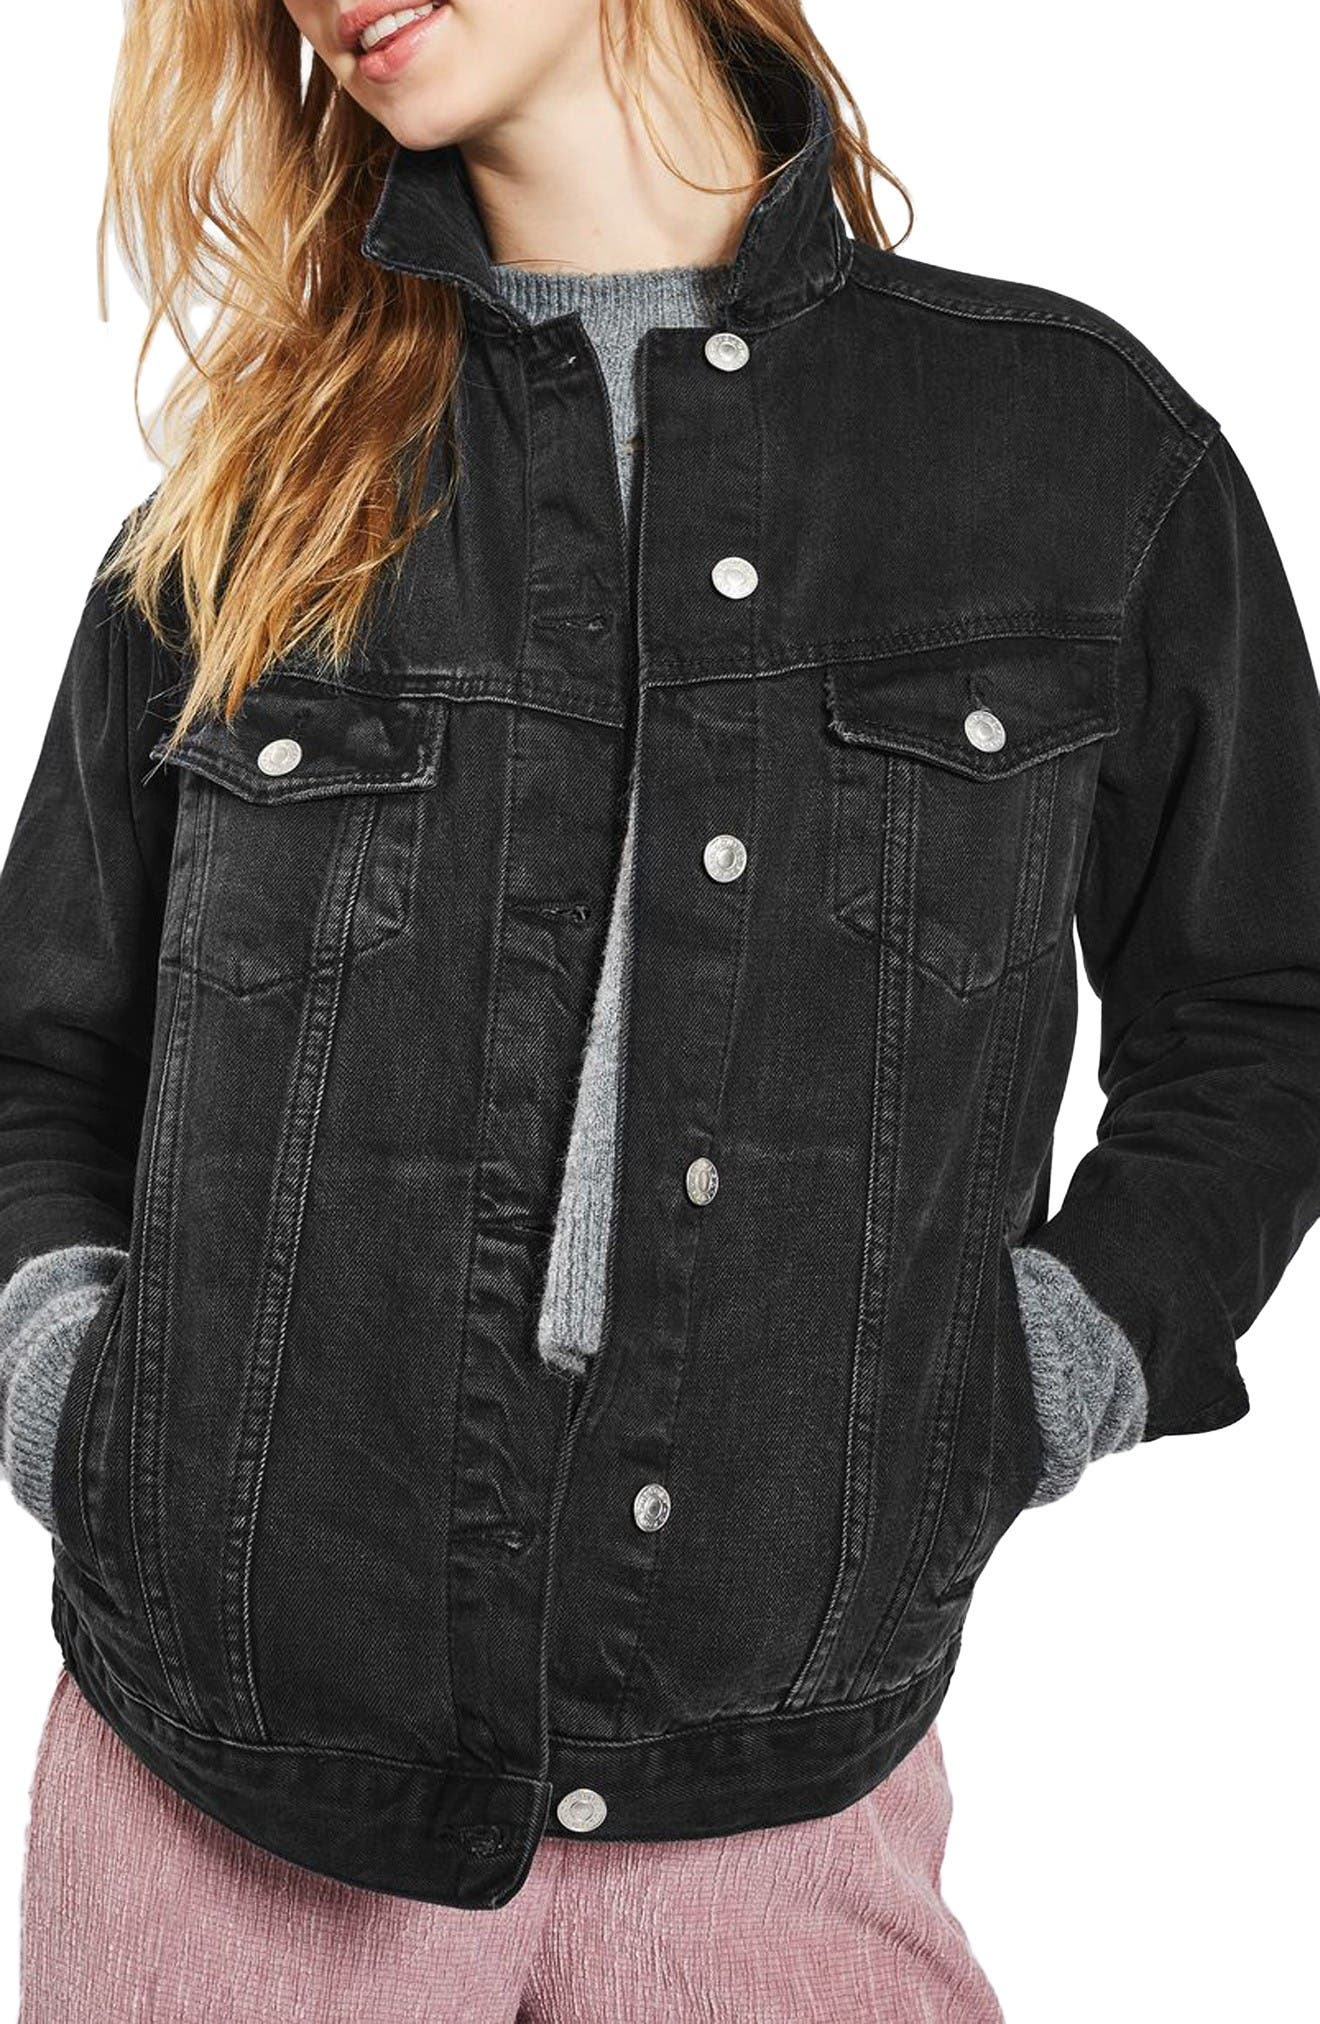 Alternate Image 1 Selected - Topshop Oversize Denim Jacket